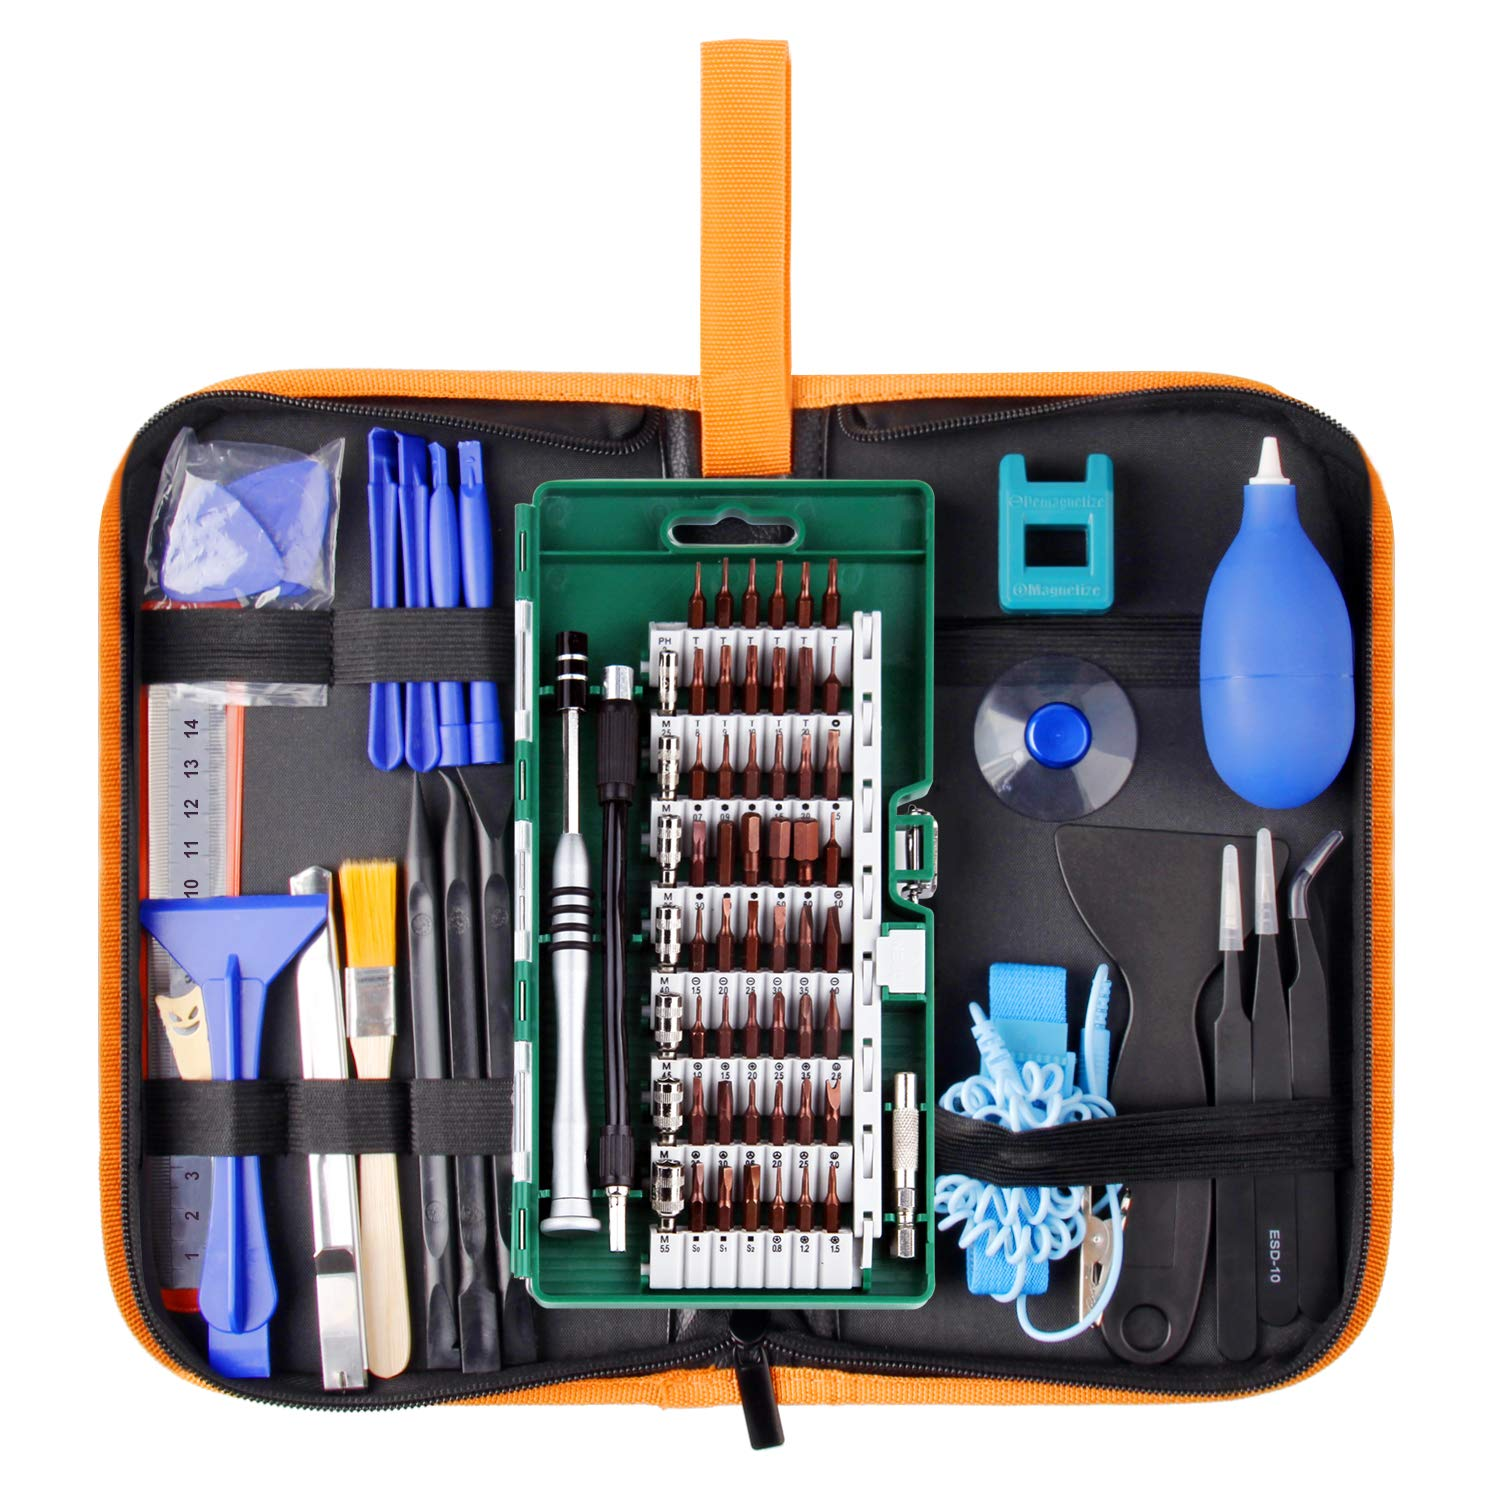 Precision Screwdriver Set 85 in 1 Repair Tool Kit Electronics Magnetic Driver Kit with Premium Portable Bag for Cell Phone, iPhone, iPad, Watch, Tablet, PC, MacBook Laptop and More by WOWGO Coolife